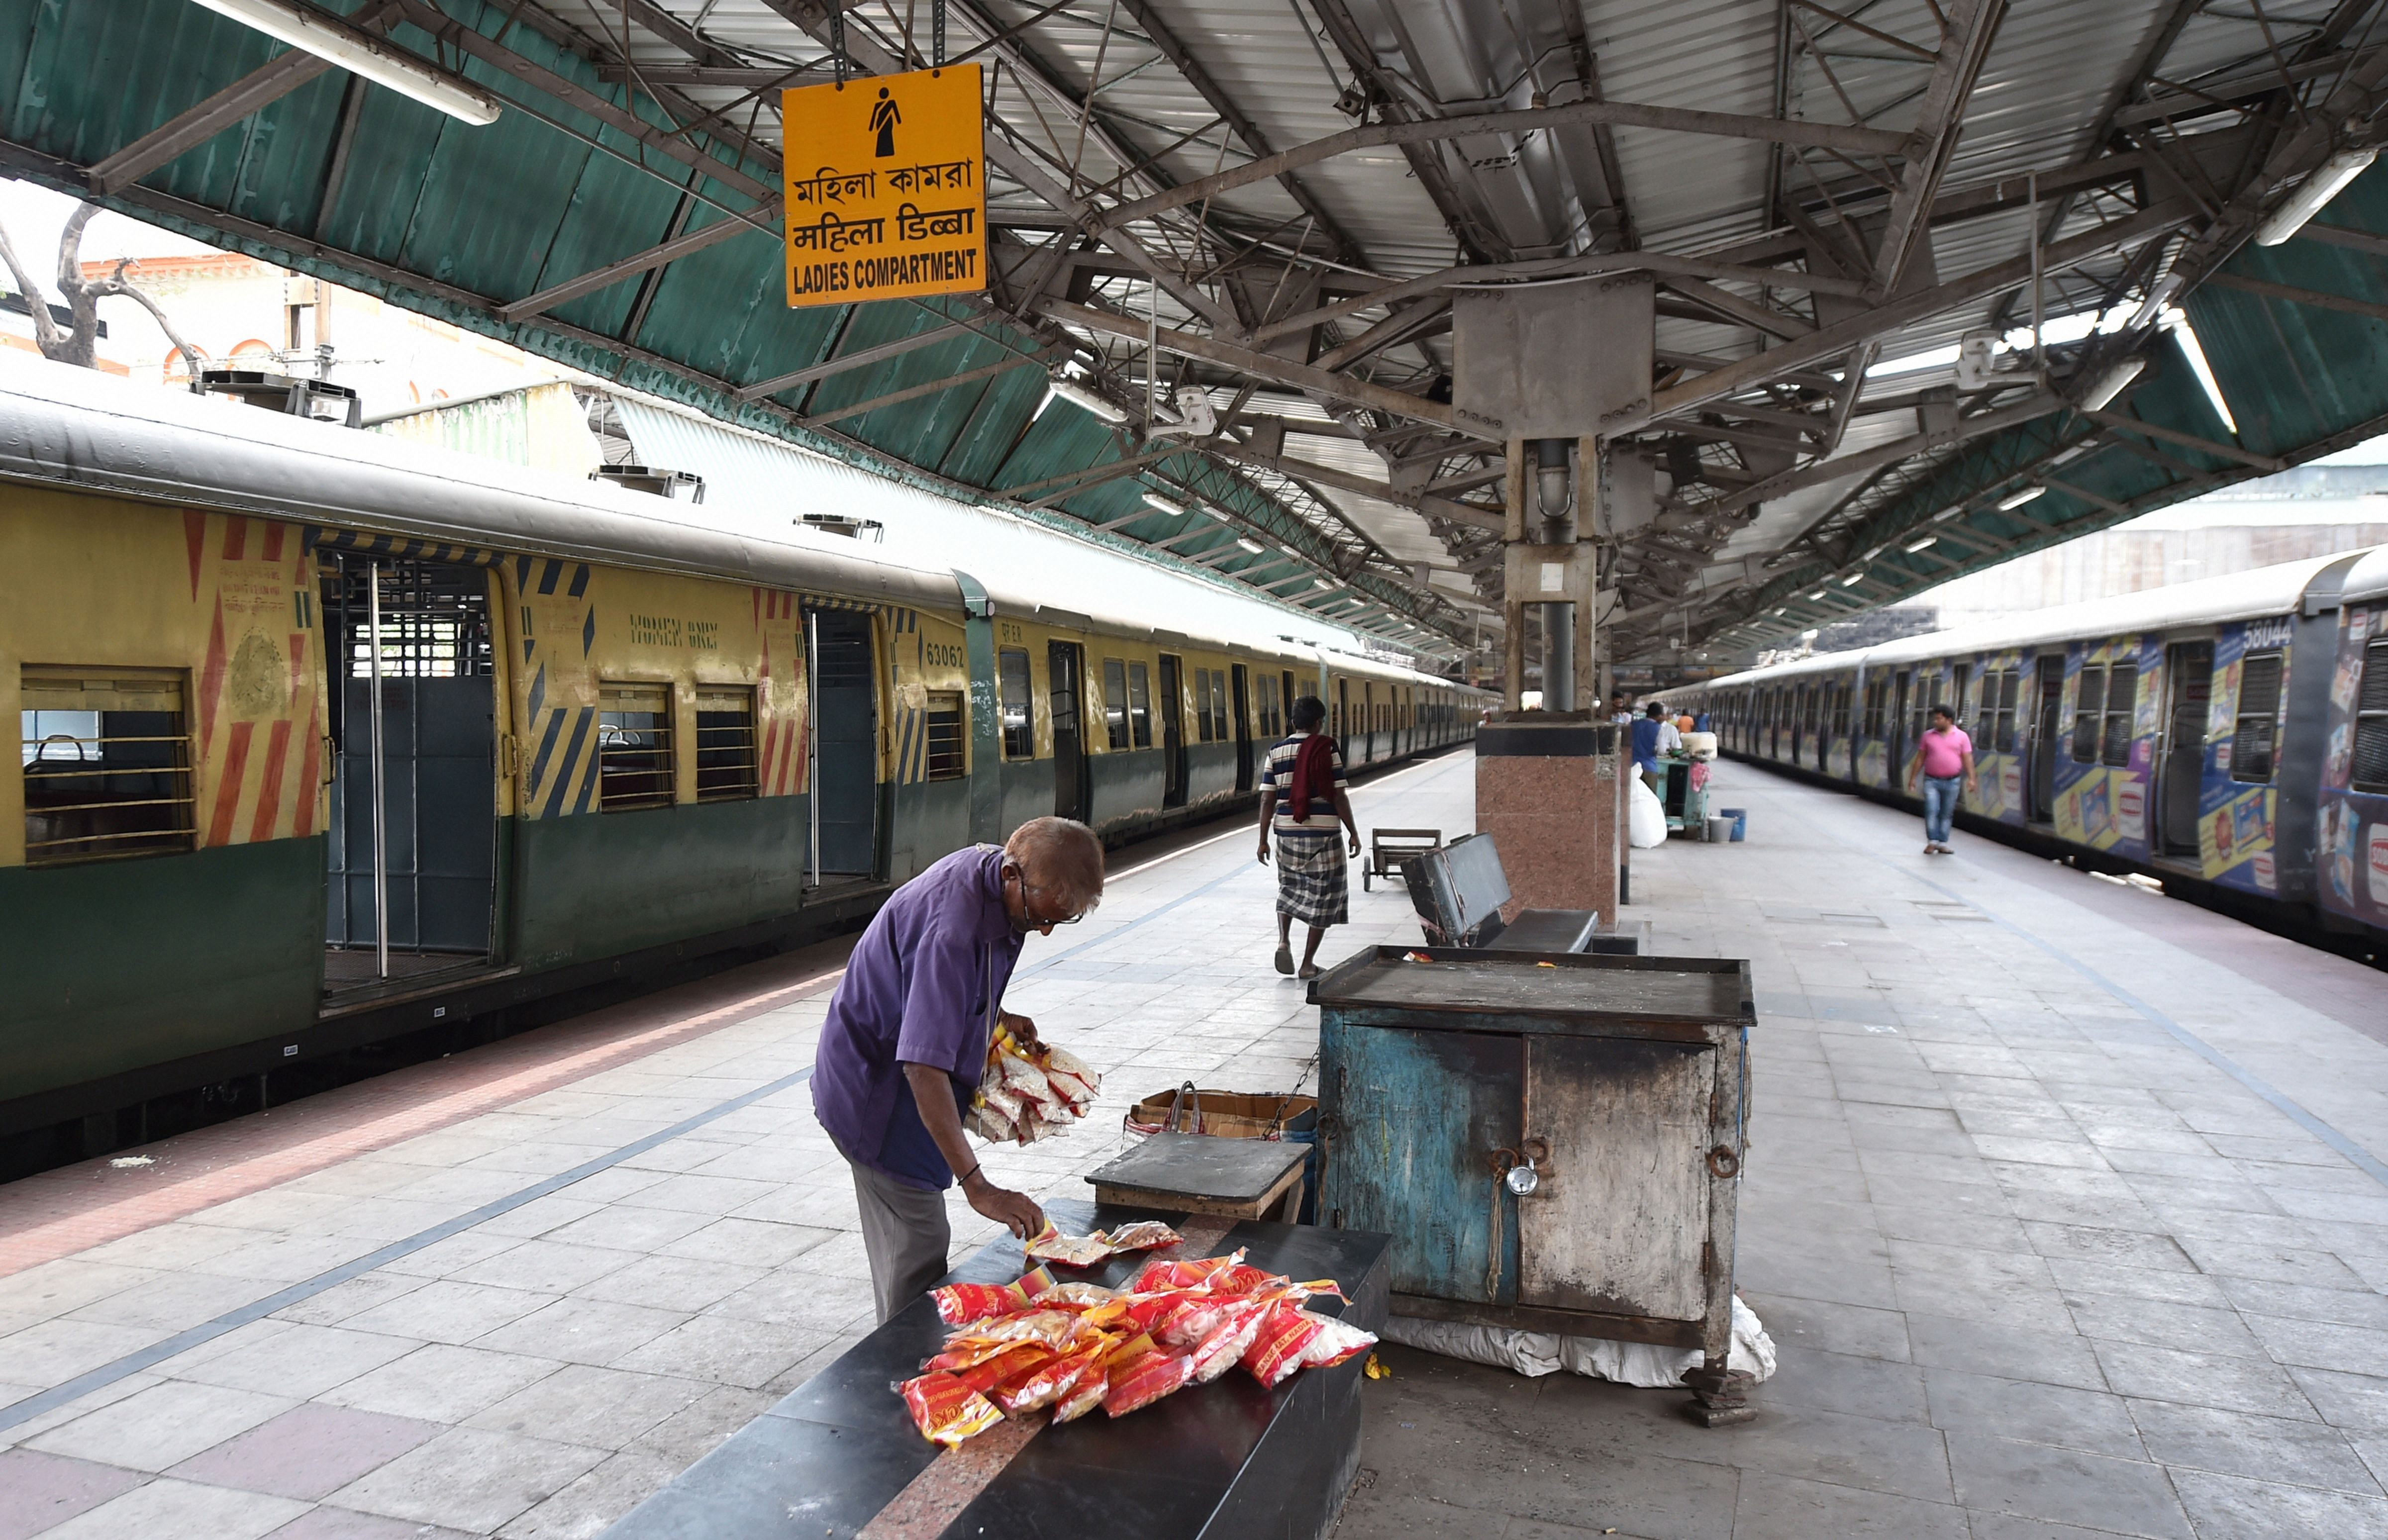 A hawker counts his unsold items at a deserted platform of Sealdah Railway Station, in the wake of coronavirus pandemic in Calcutta, Saturday, March 21, 2020.